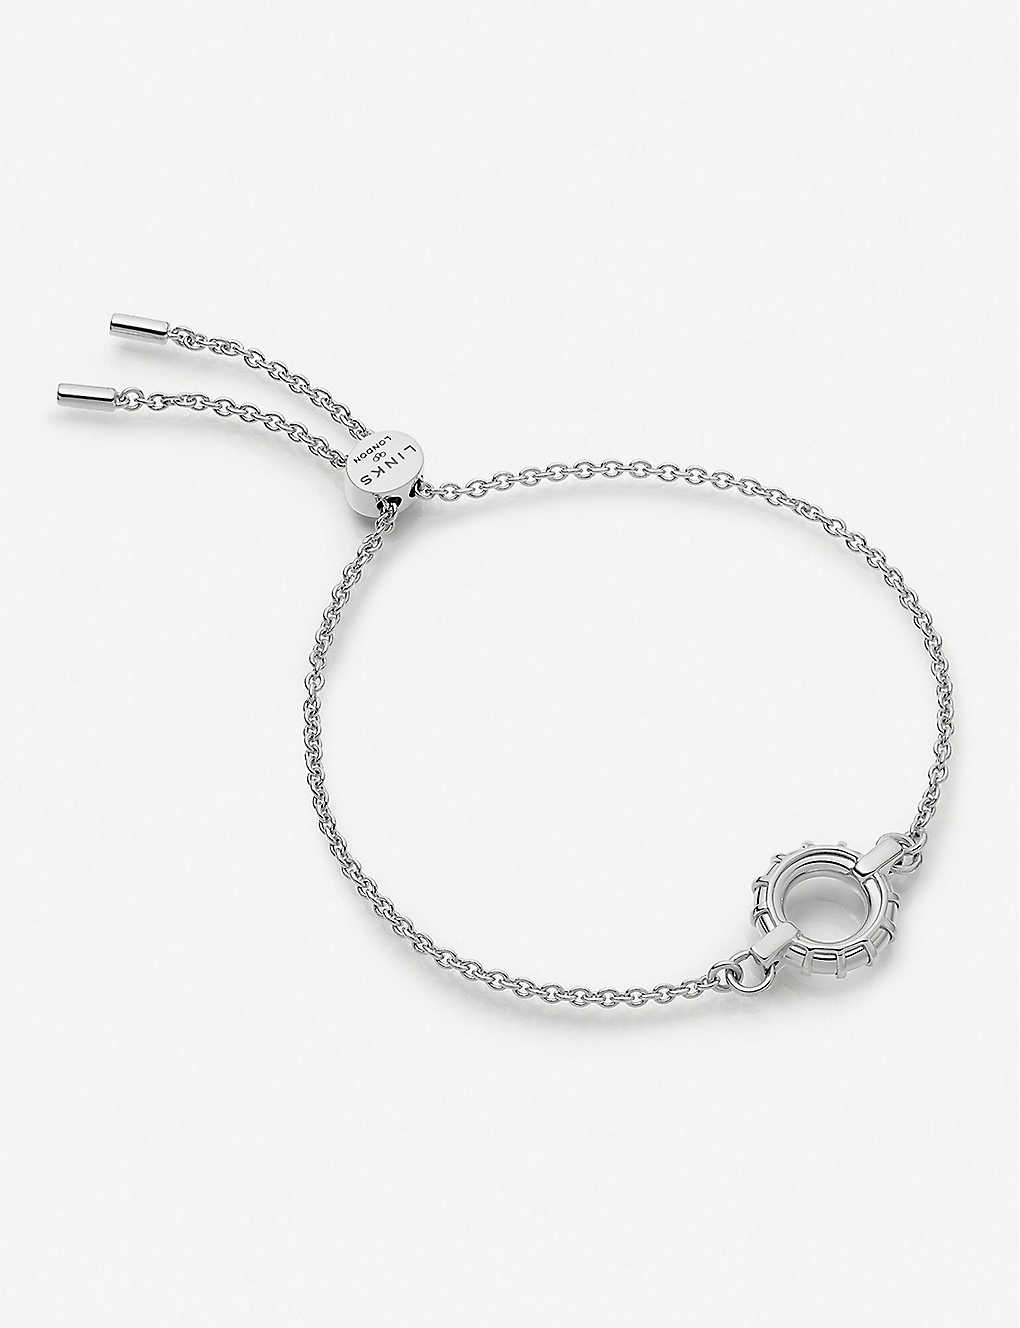 LINKS OF LONDON: Brutalist sterling silver toggle bracelet